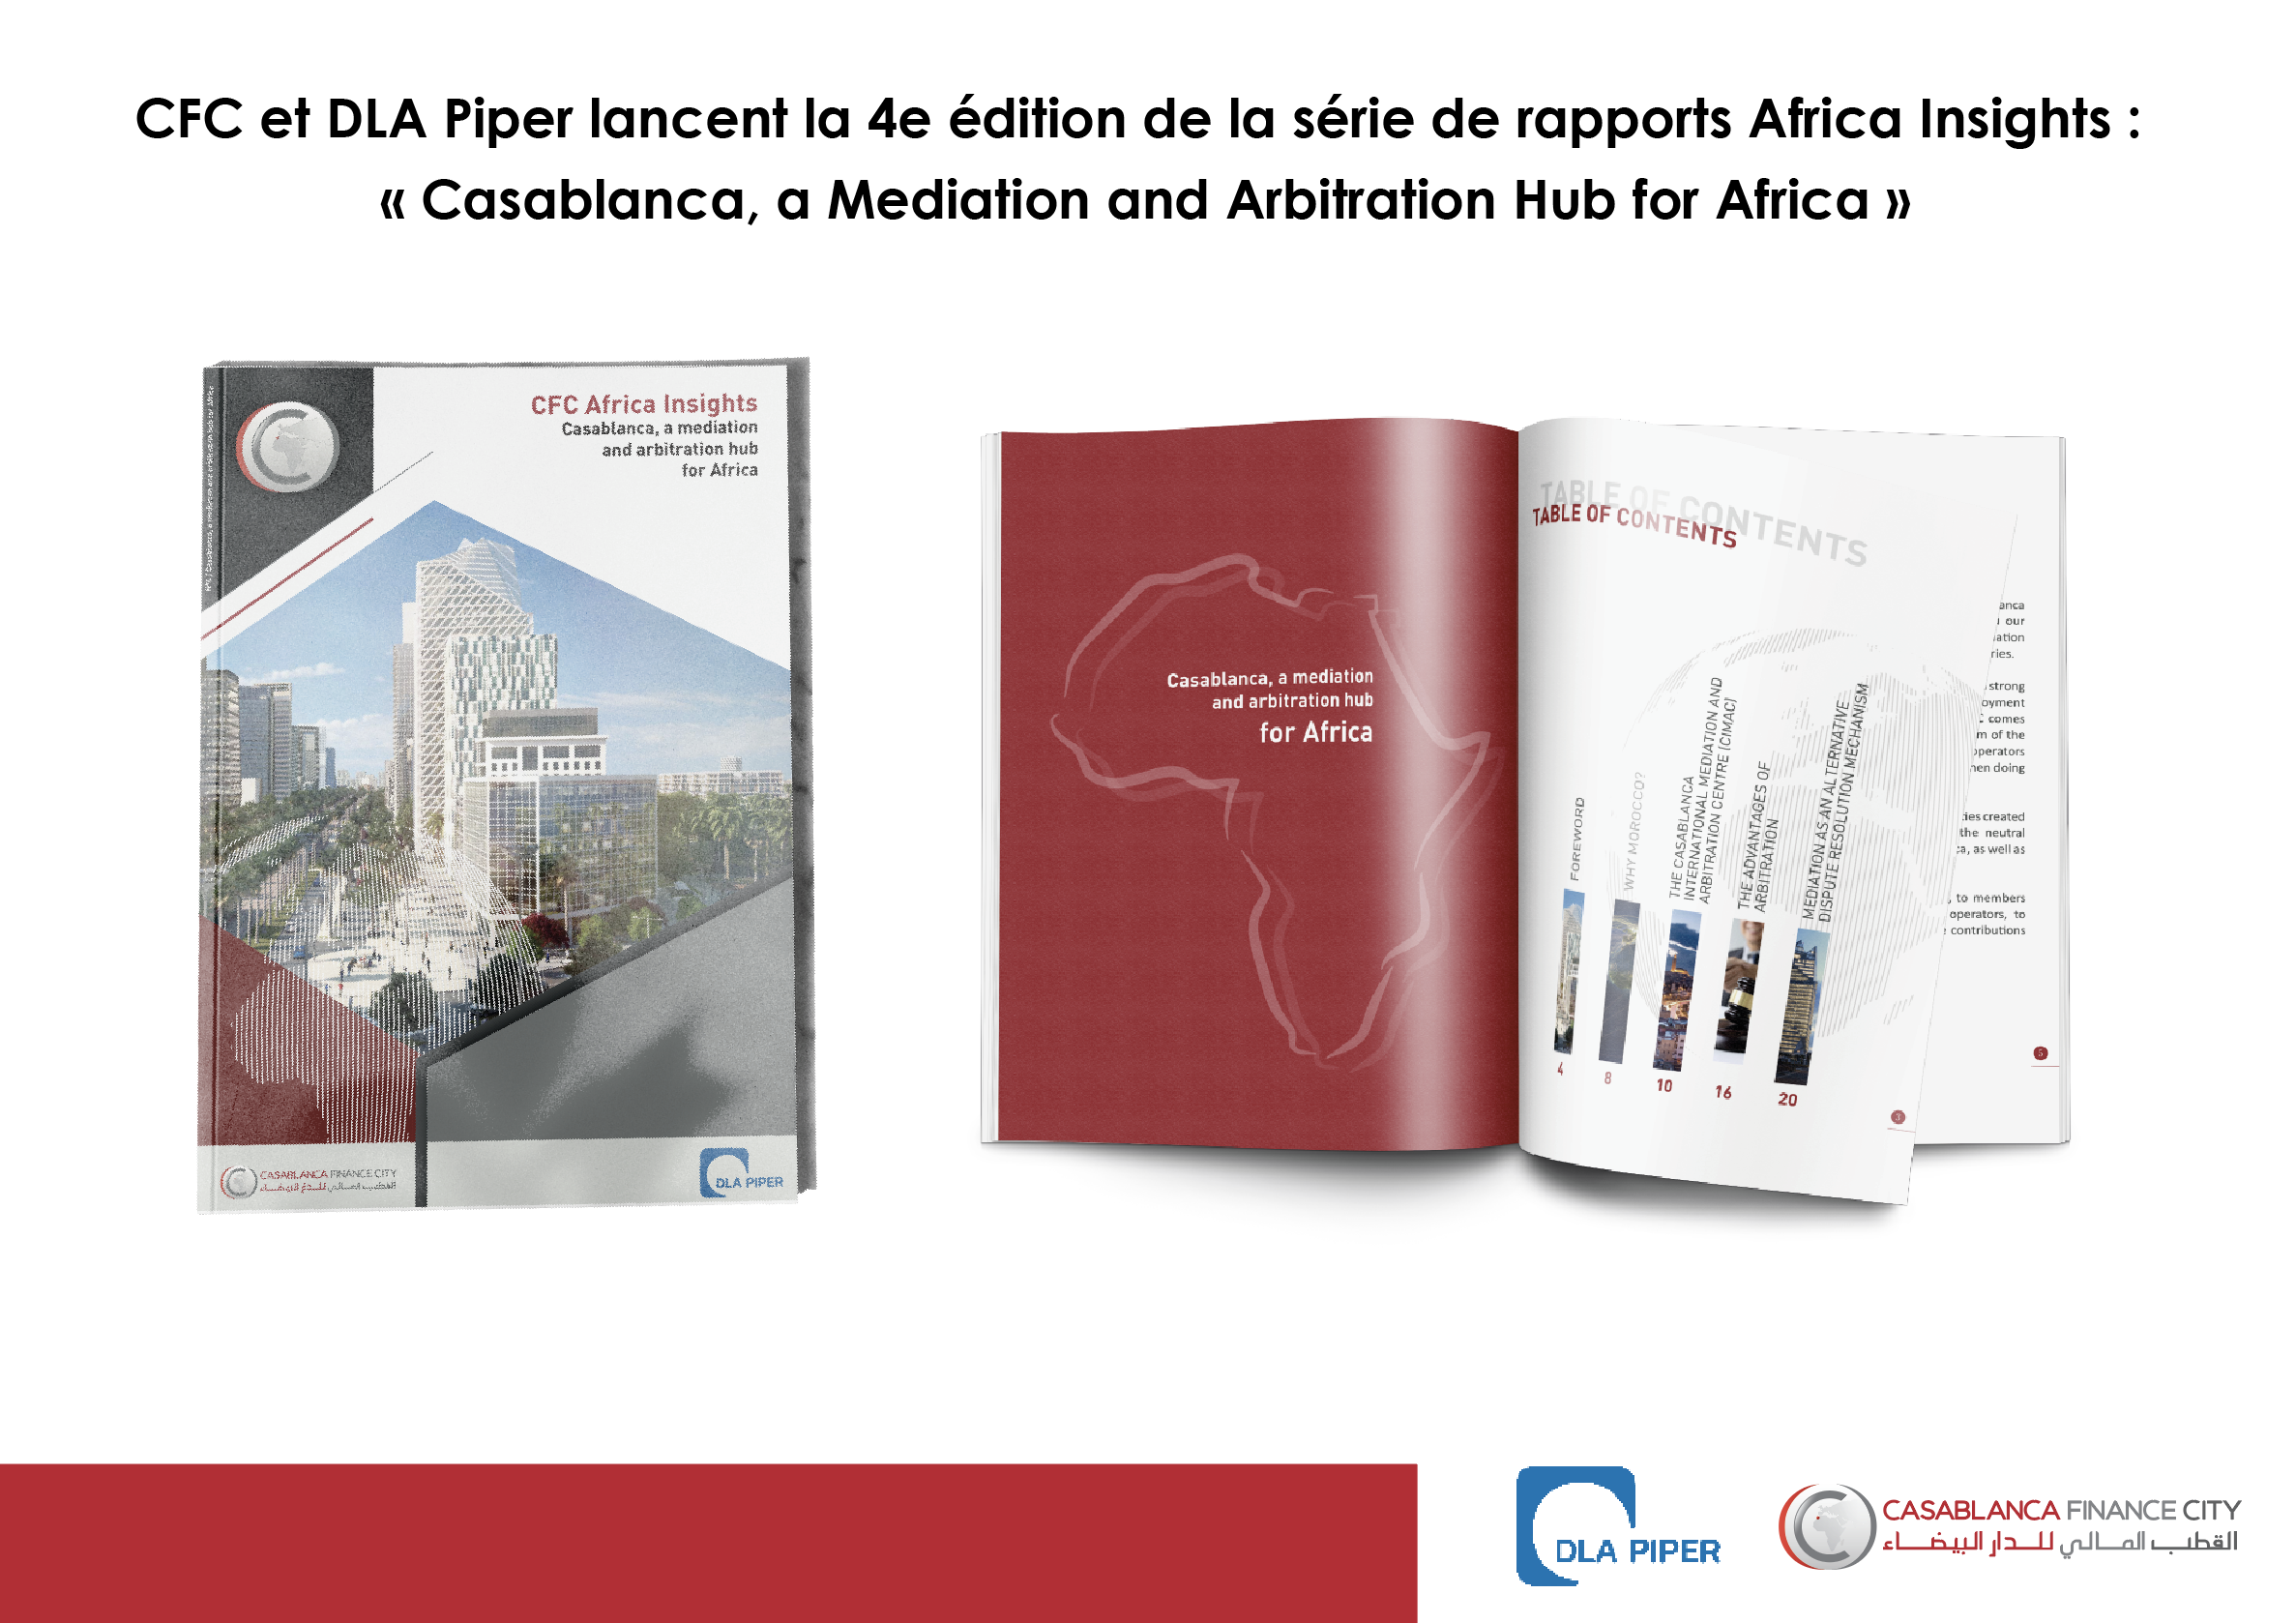 Casablanca, a mediation and arbitration hub for Africa